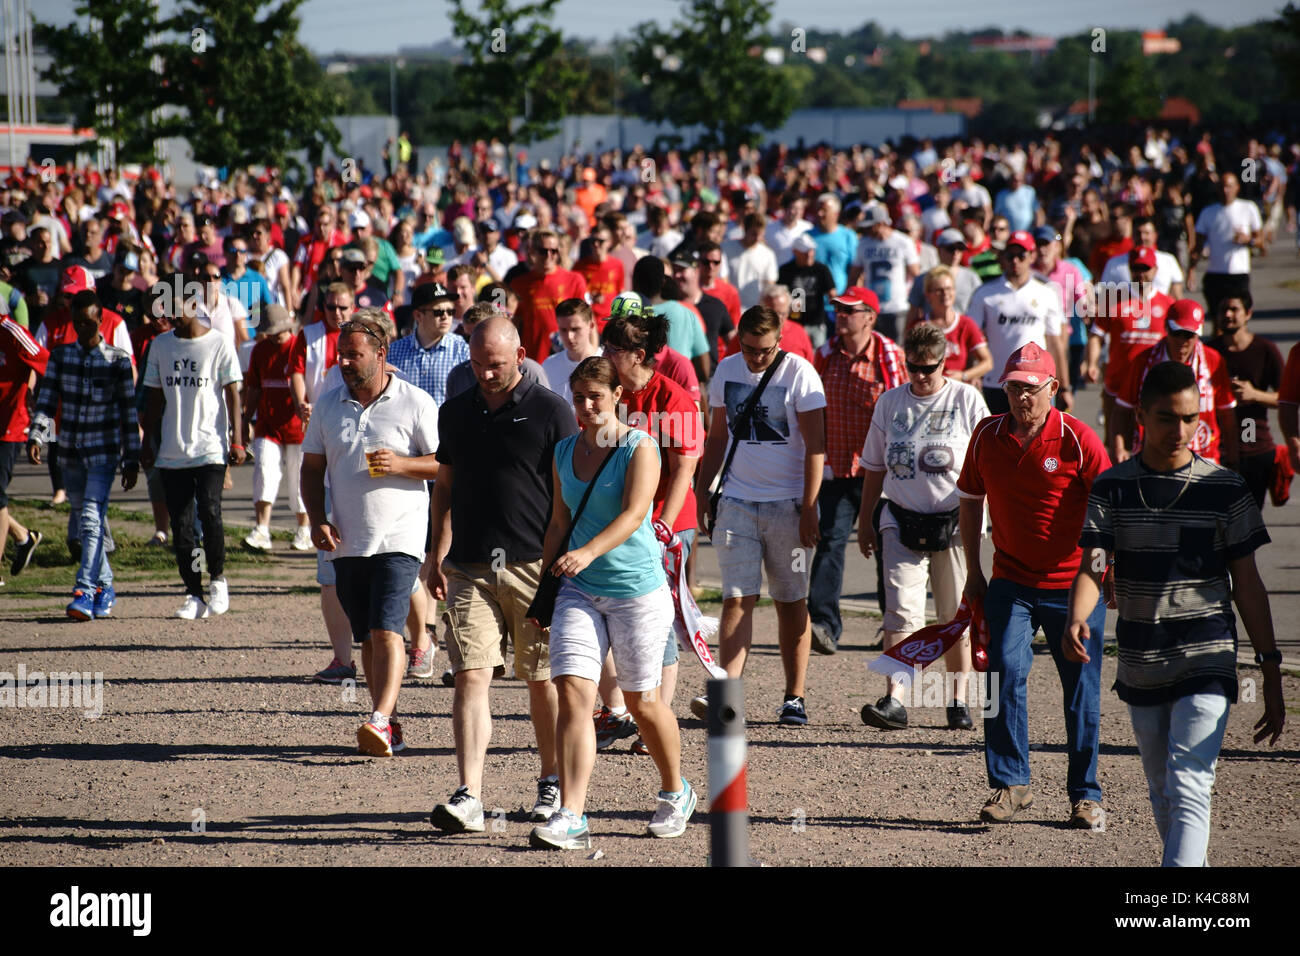 Soccer Fans Flock Out Of The Stadium - Stock Image